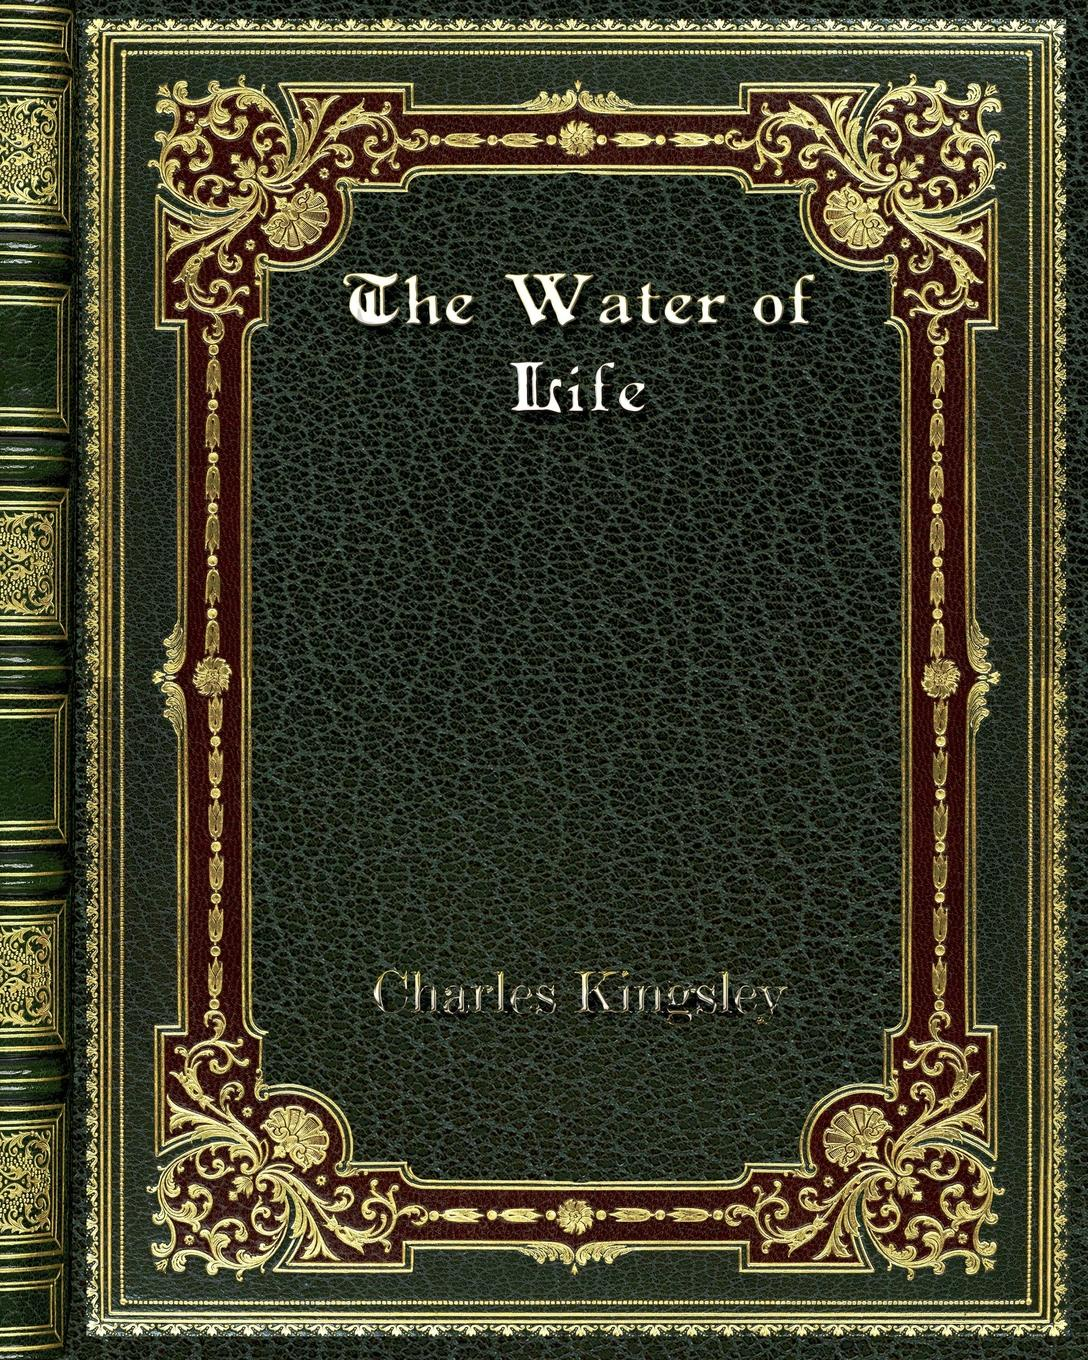 Charles Kingsley The Water of Life charles kingsley charles kingsley his letters and memories of his life volume 2